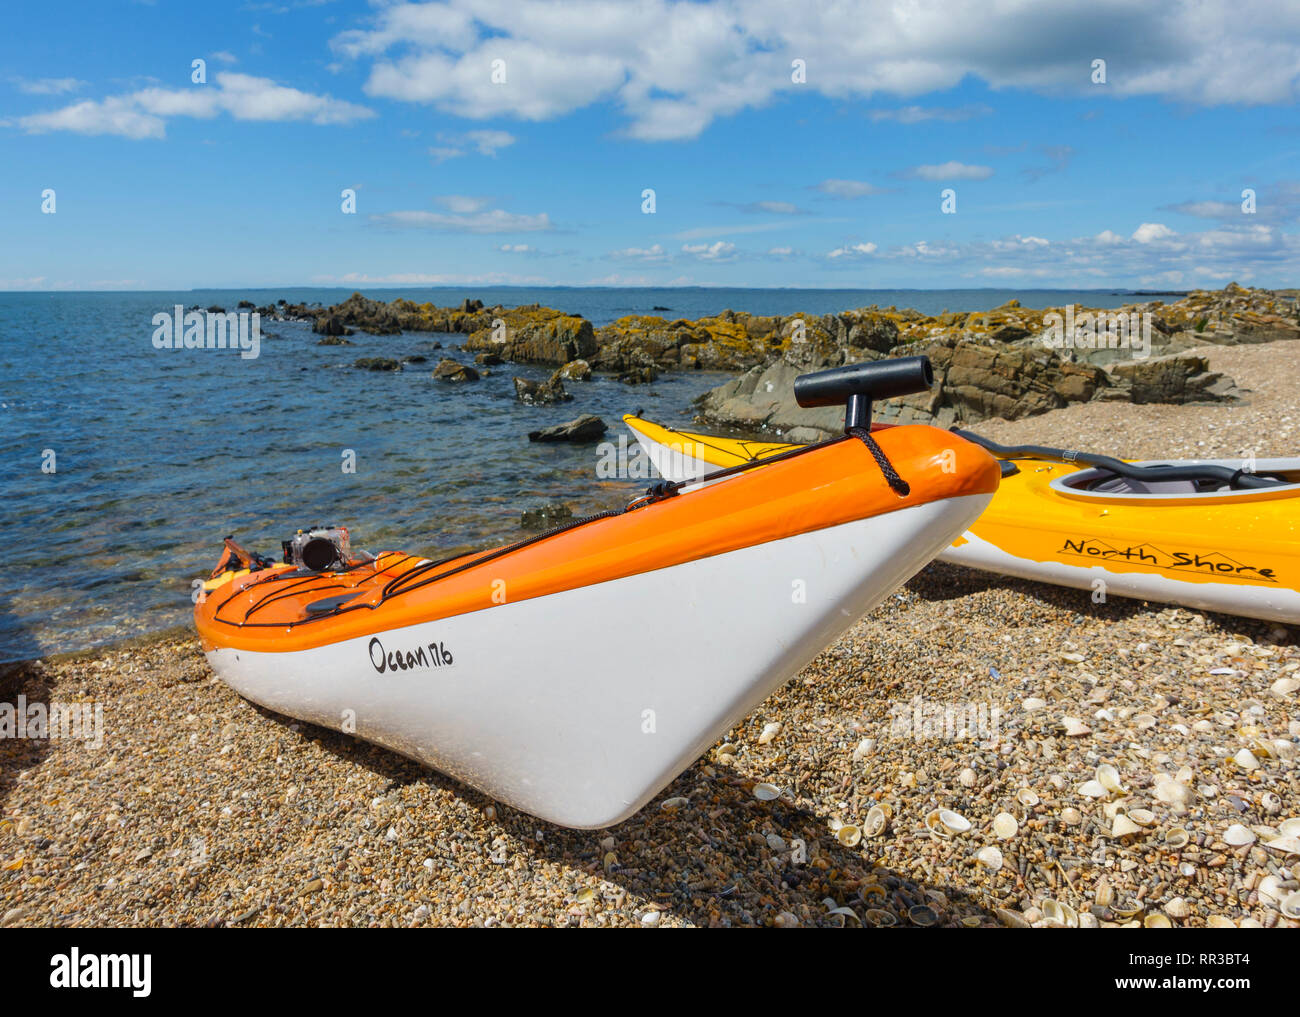 Sea Kayak on the beach, Solway Firth, Dumfries & Galloway, Scotland - Stock Image